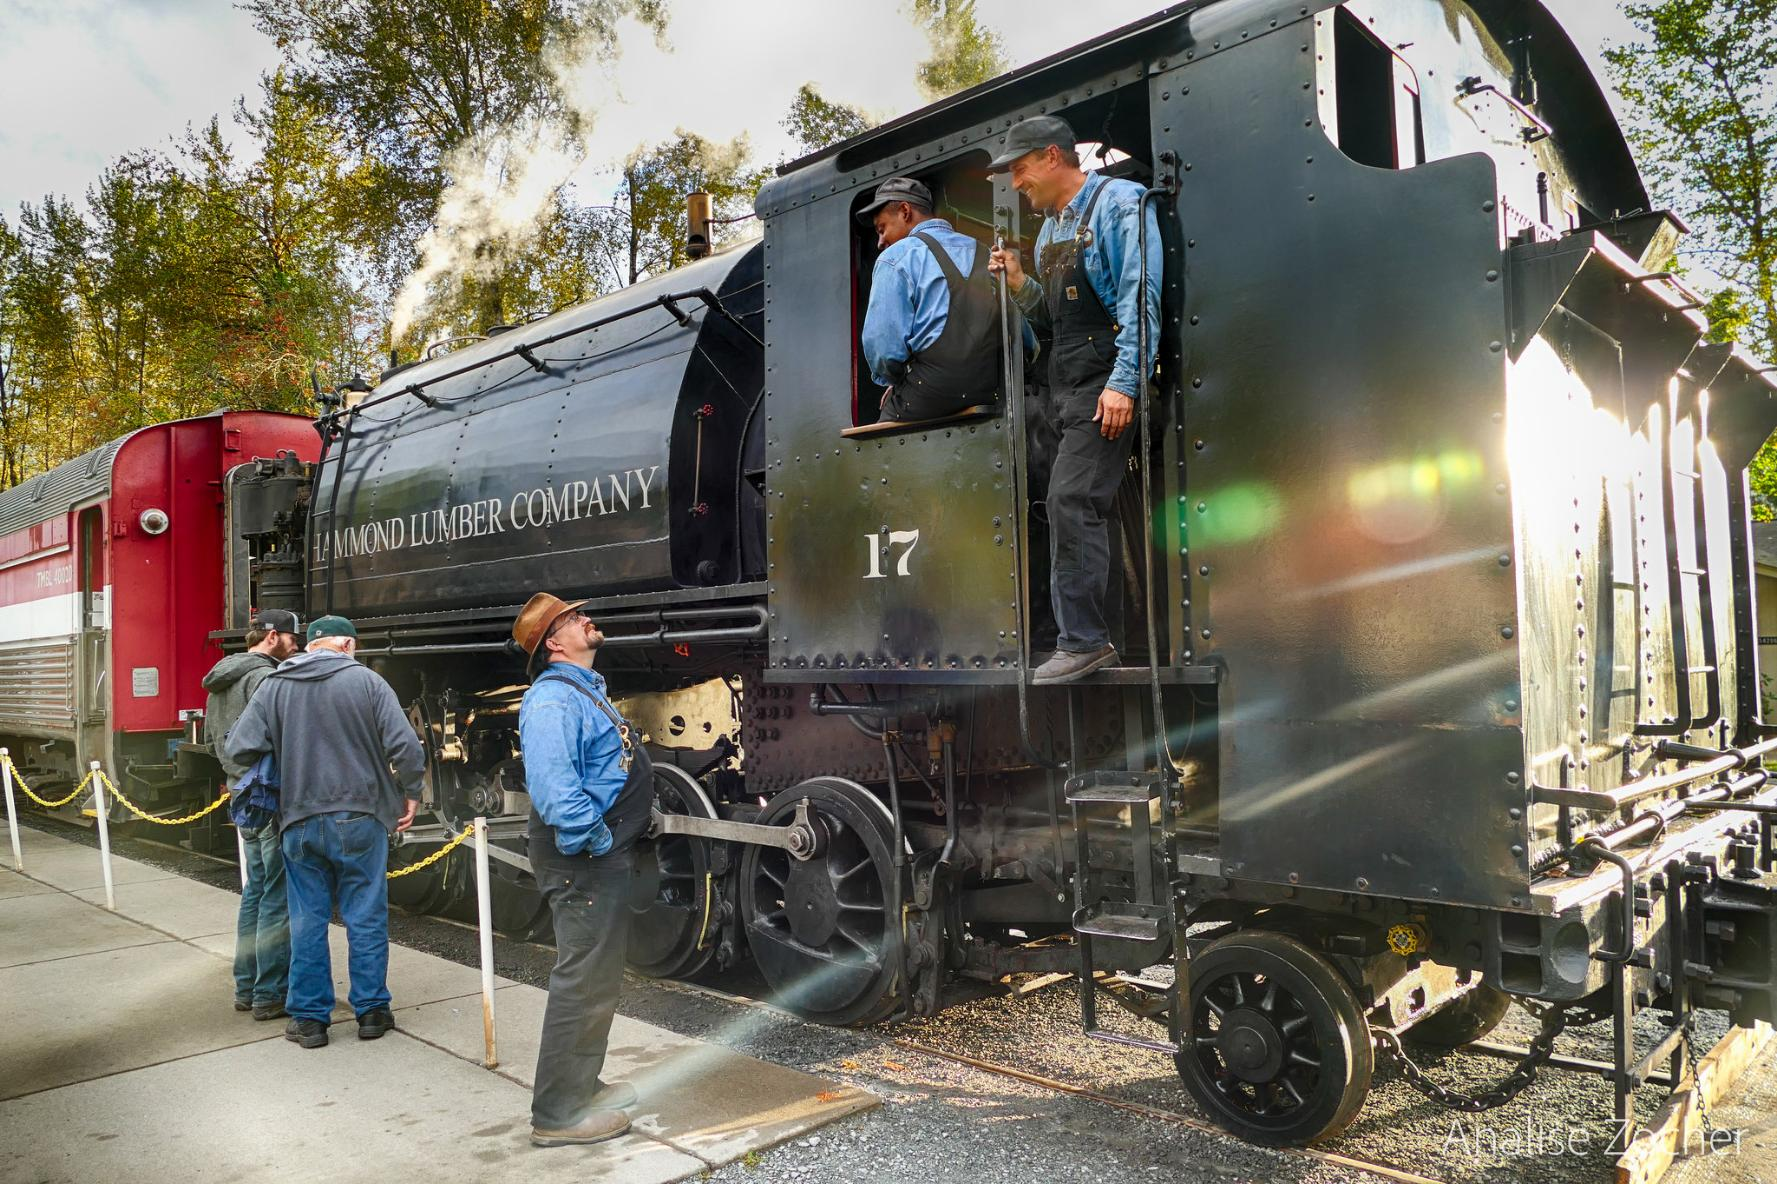 Train Conductors Share The Unreal Things They've Seen On The Railroad